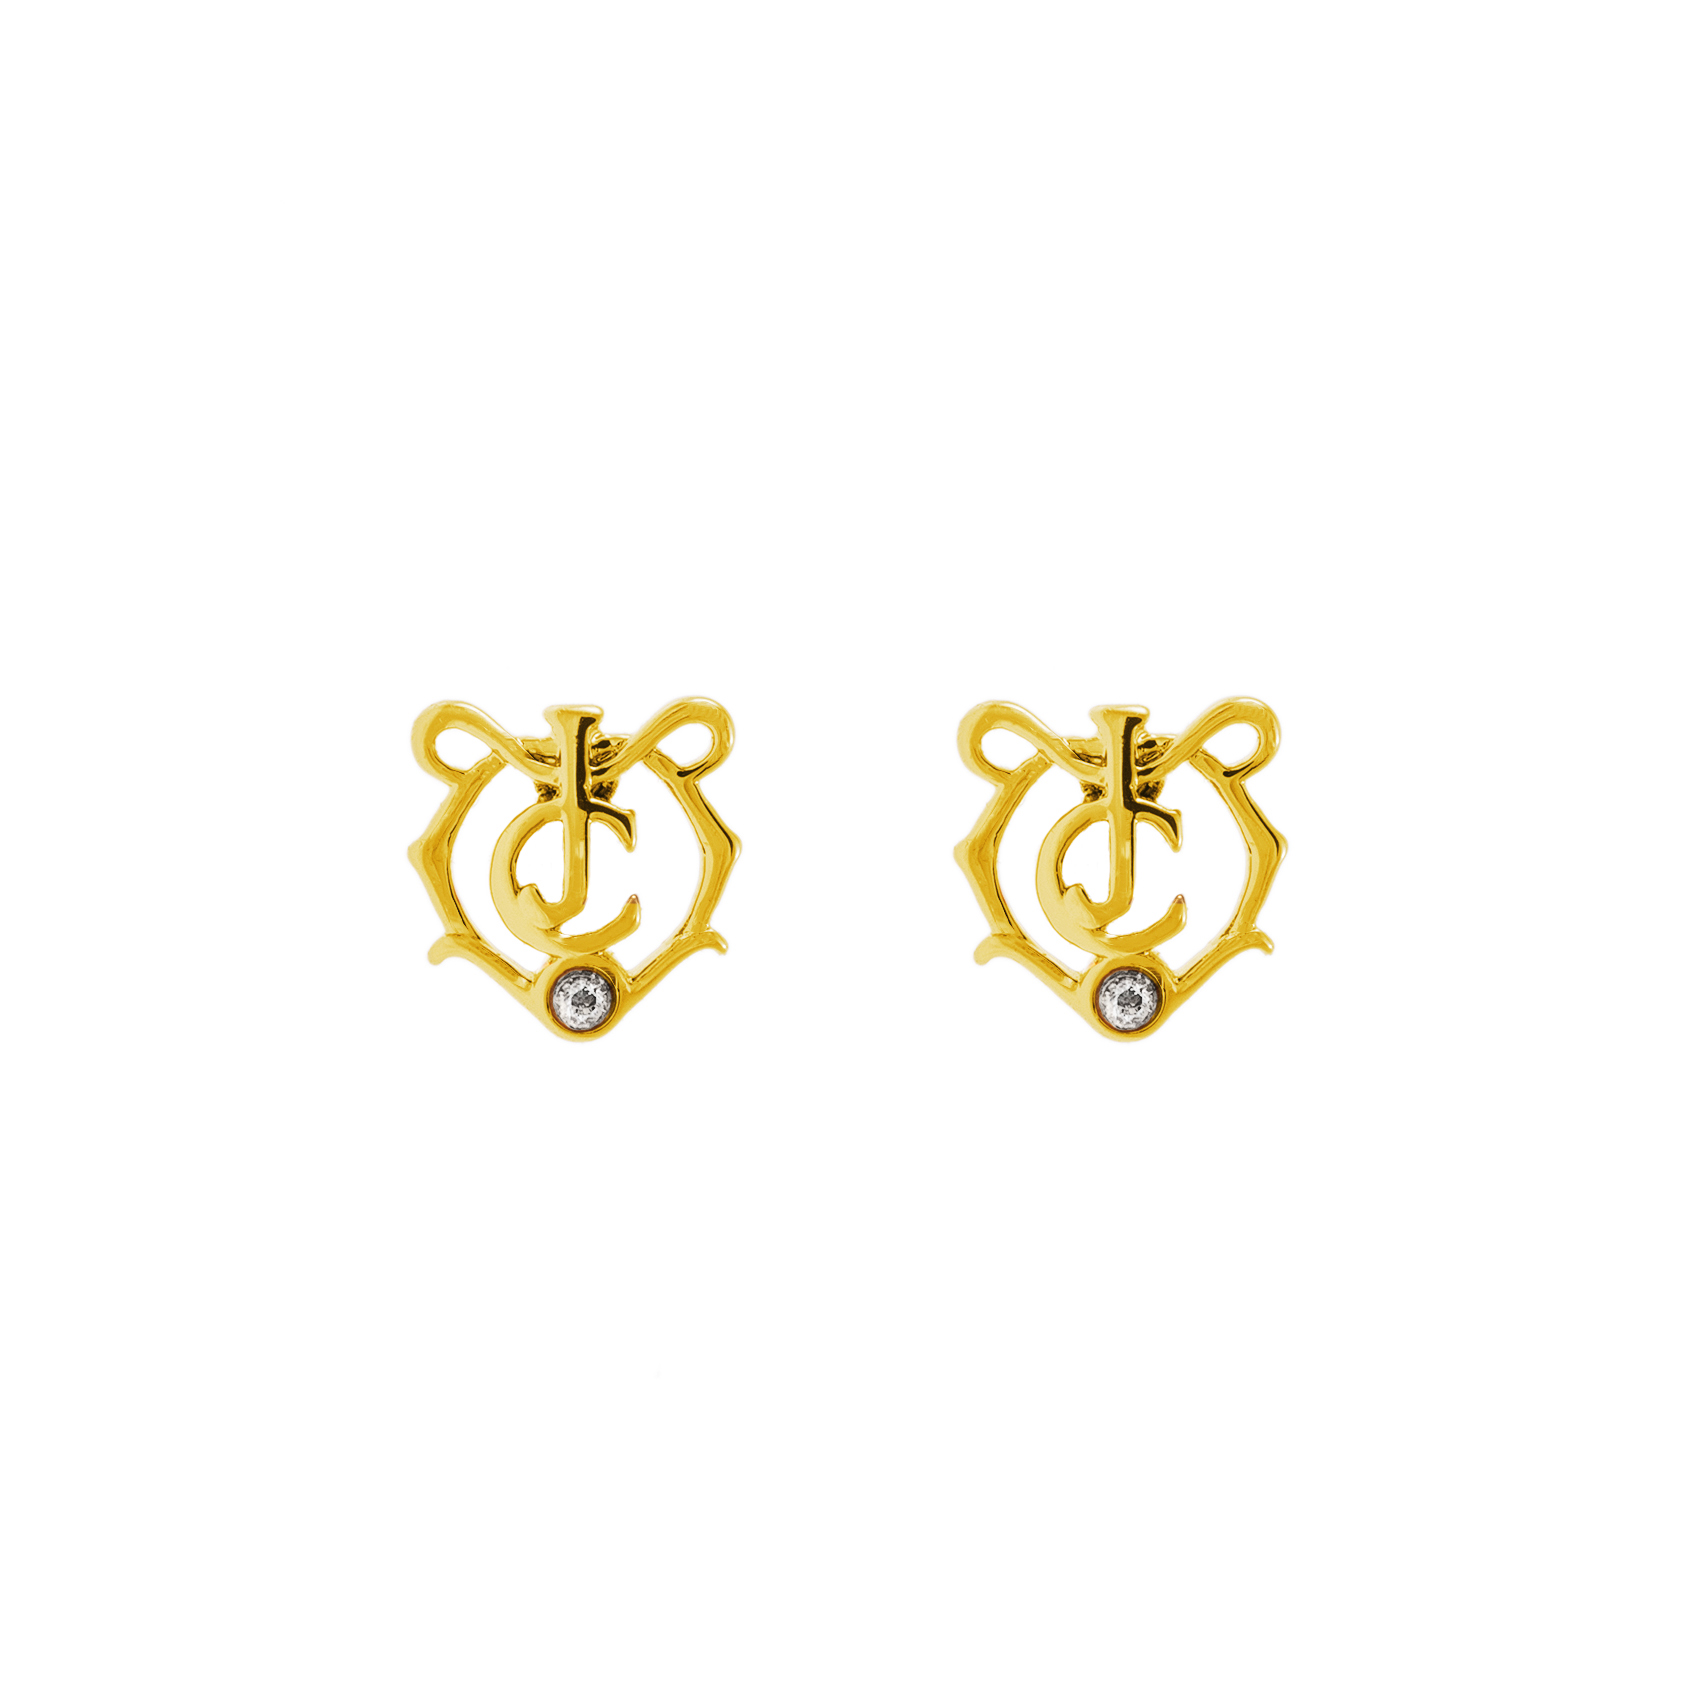 JUICY COUTURE – Σκουλαρίκια JC MEDALLION EXPRESSIONS JUICY COUTURE